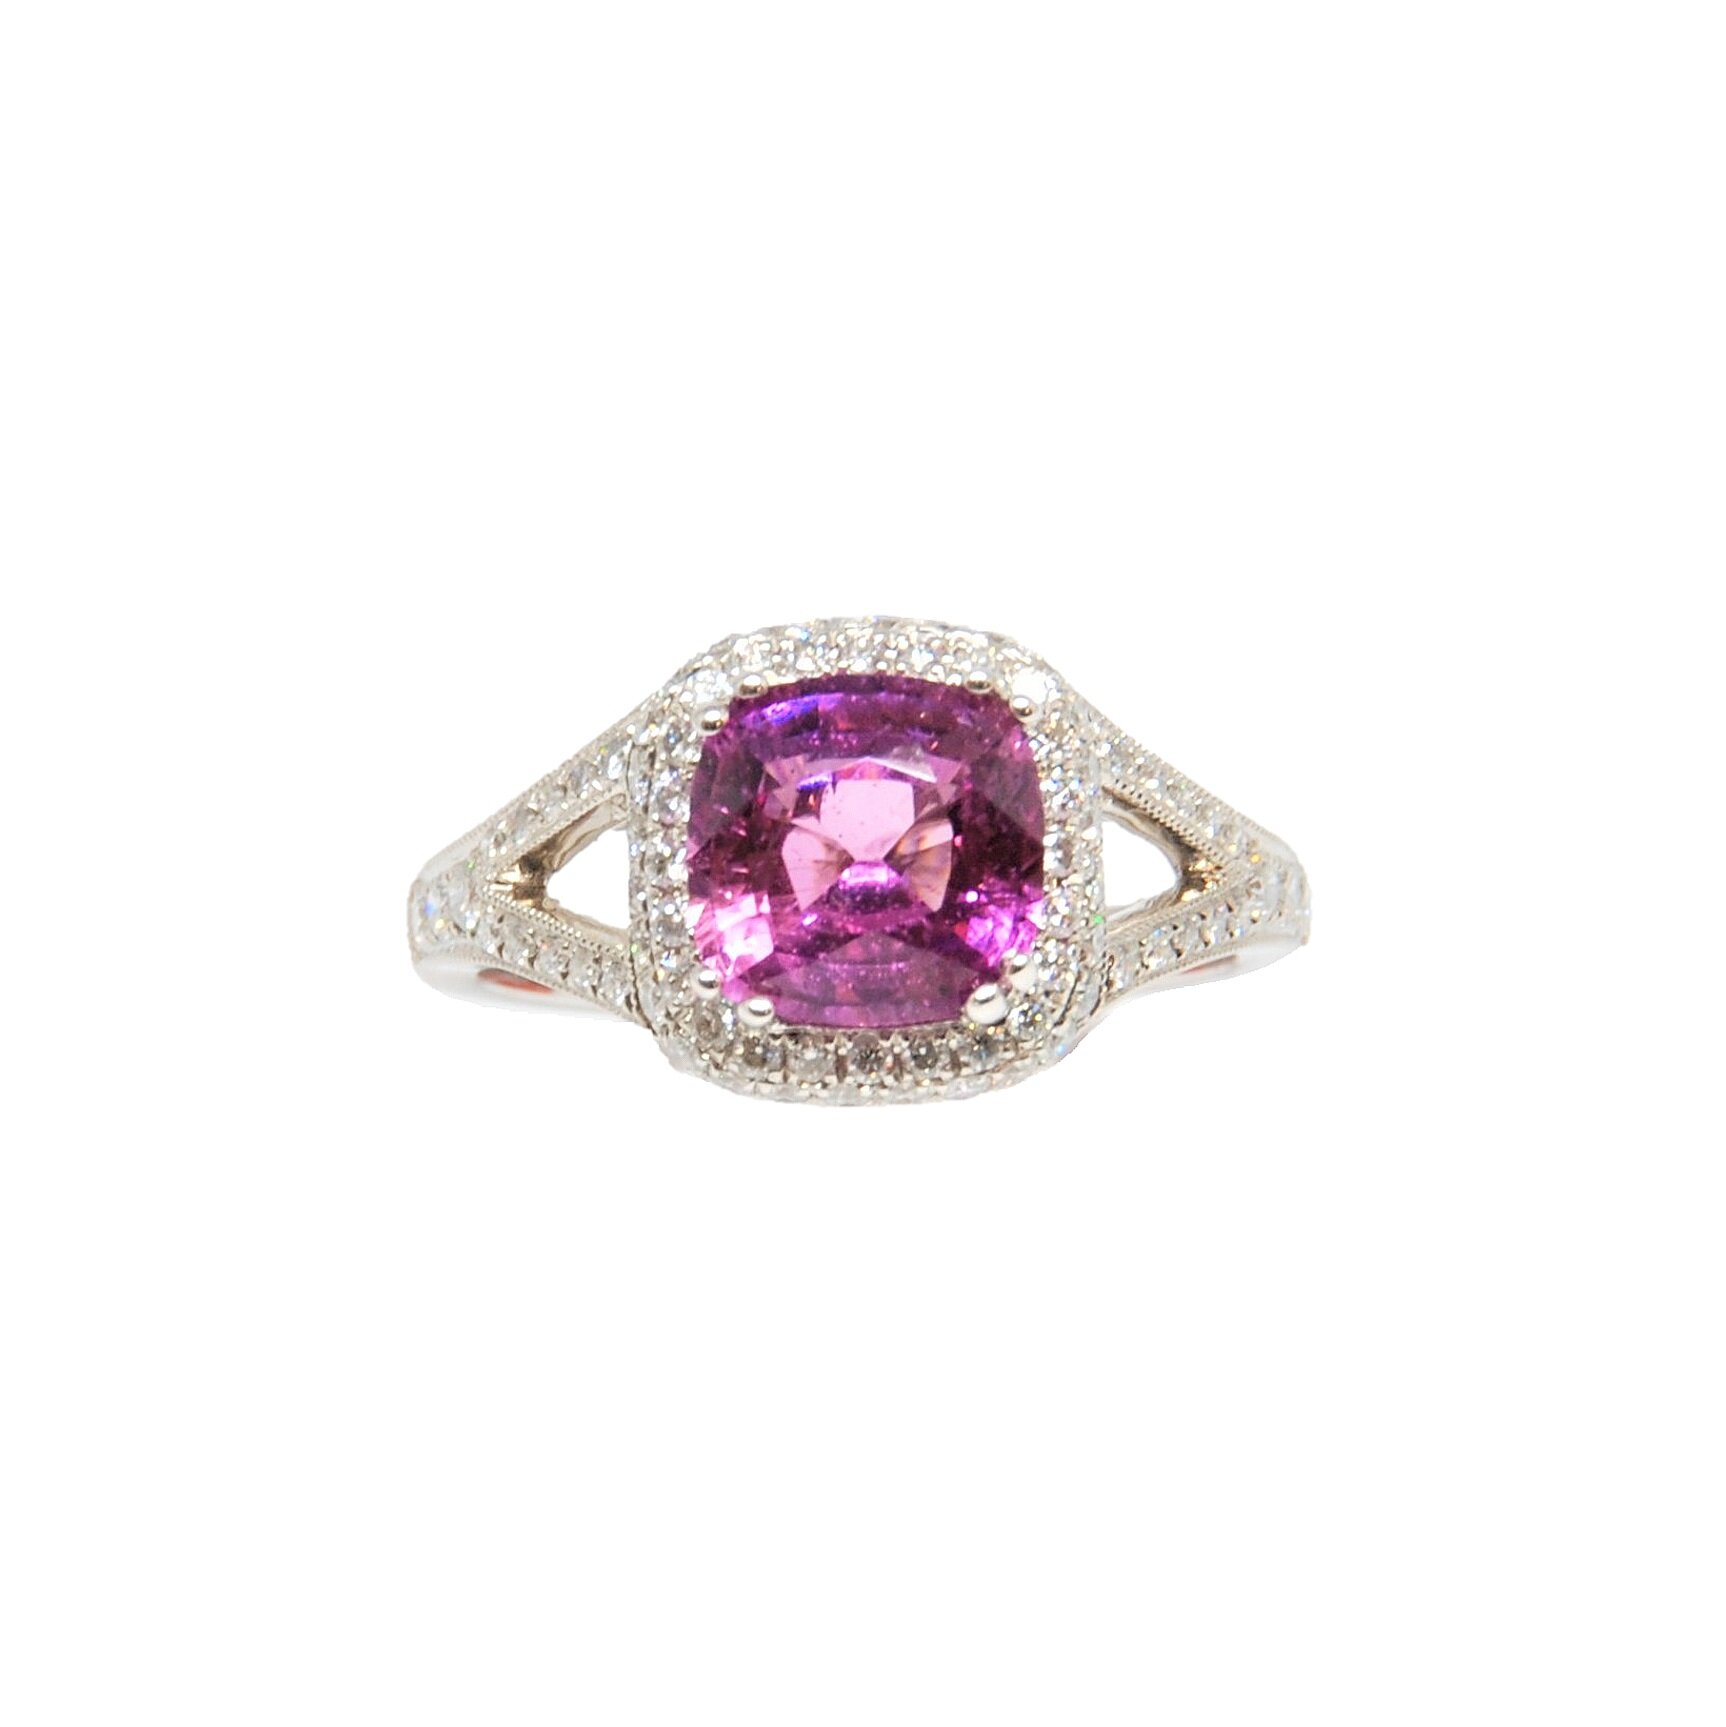 Cushion Shape Pink Sapphire Ring